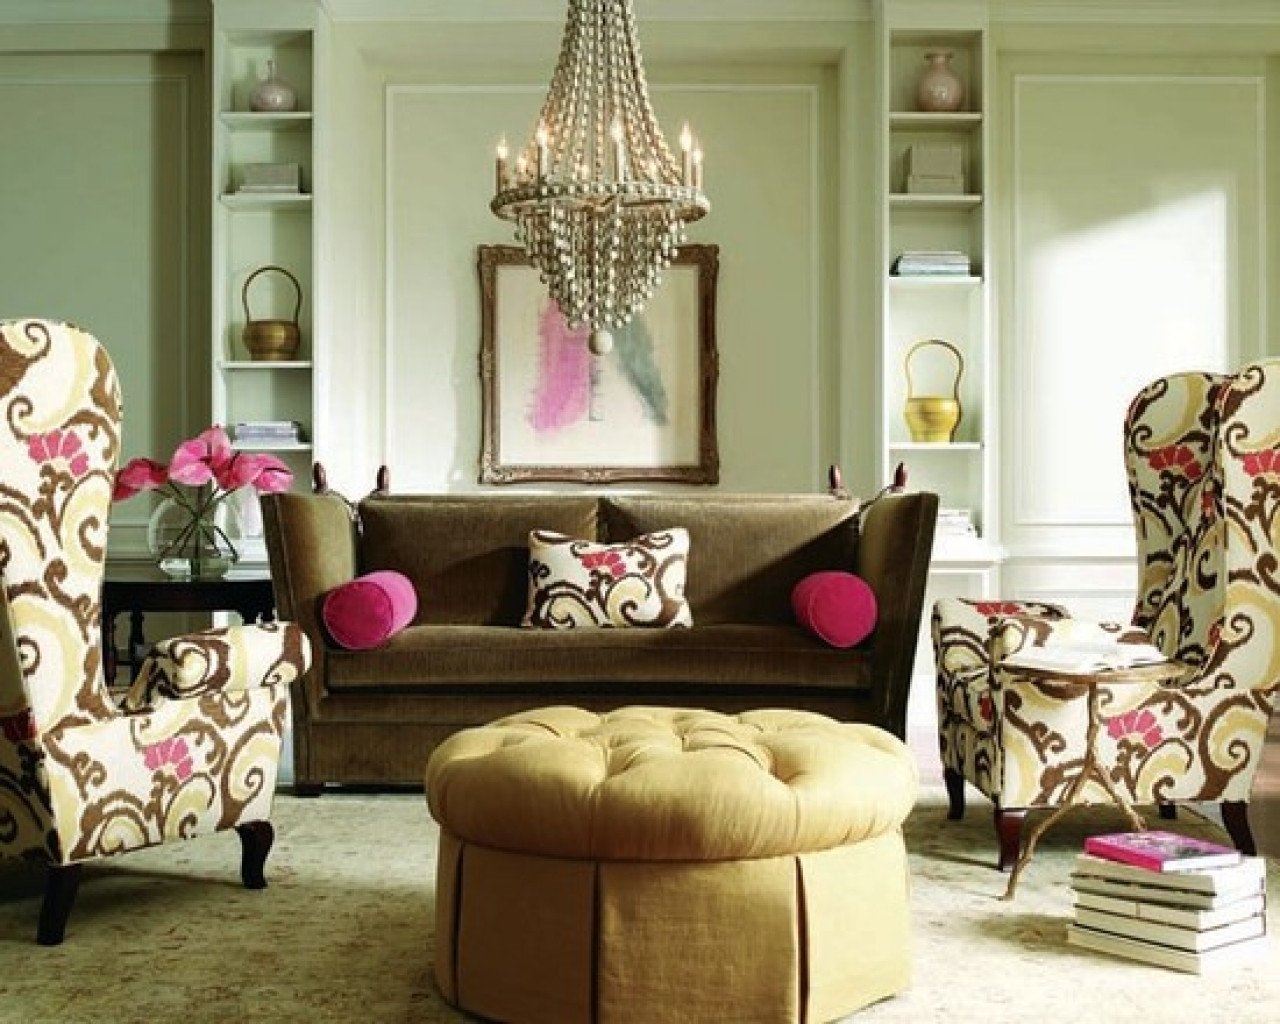 Brown Living Room Decorating Ideas Luxury Eclectic Living Room Design Ideas for Captivating Uniqueness